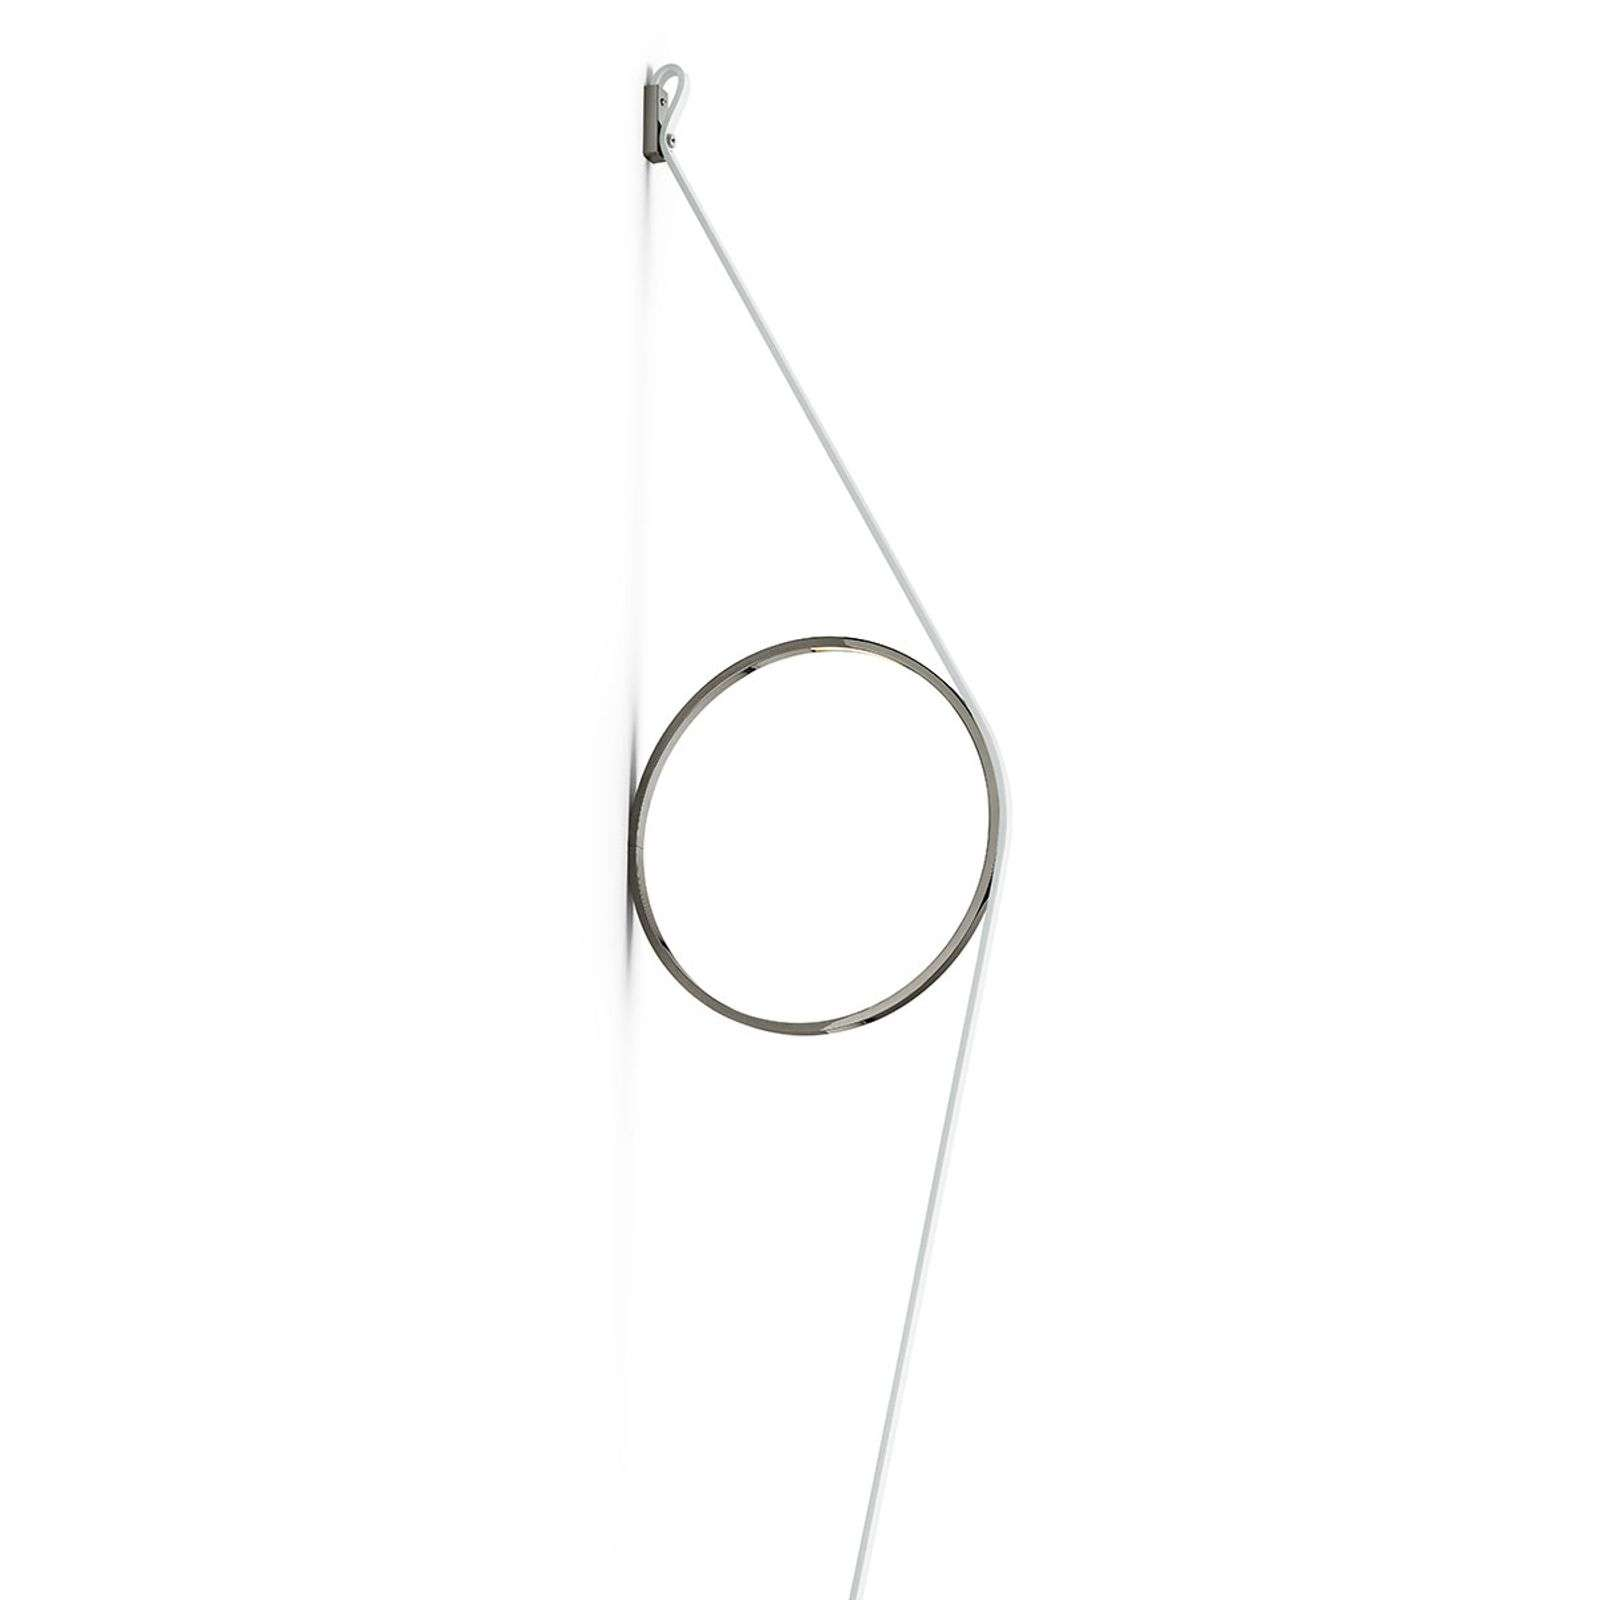 FLOS Wirering wit LED wandlamp, Ring grijs